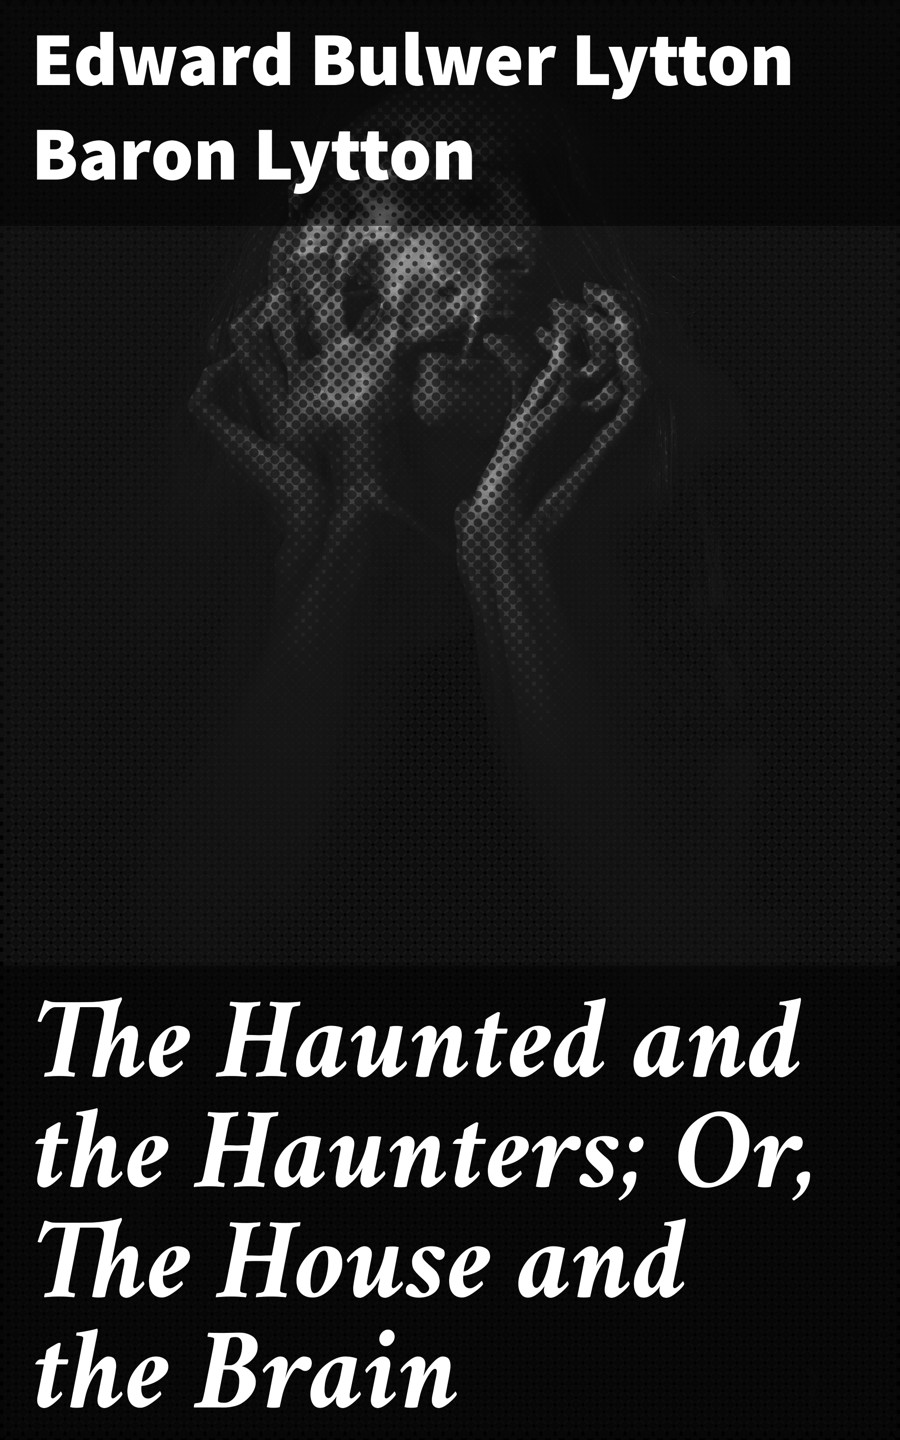 Baron Edward Bulwer Lytton Lytton The Haunted and the Haunters; Or, The House and the Brain